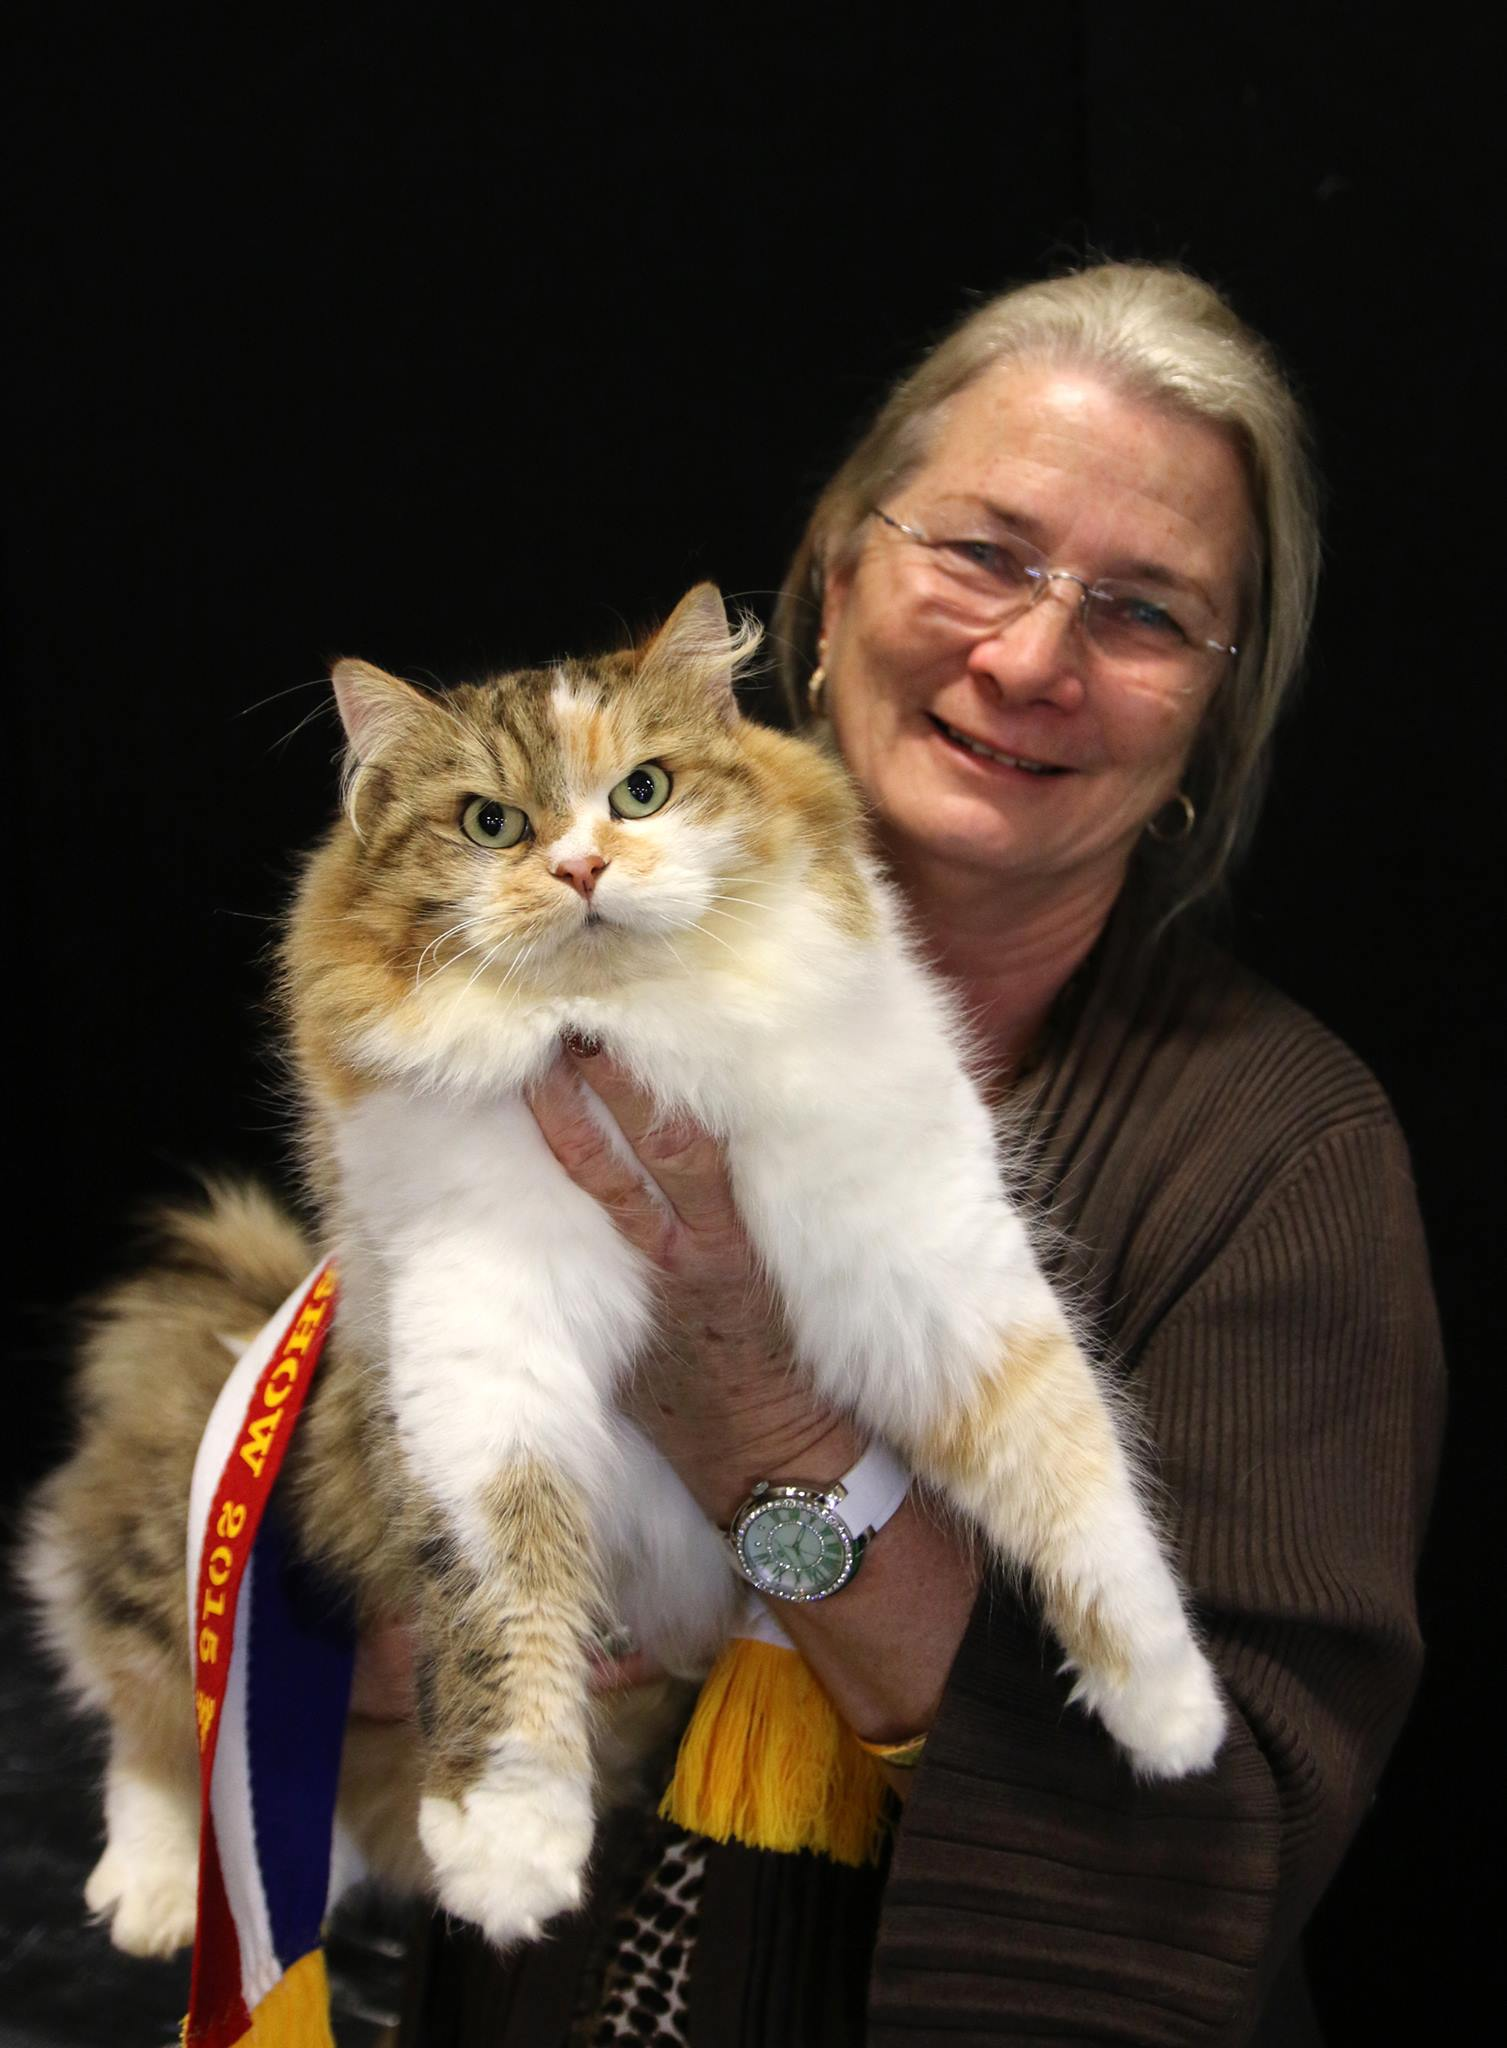 Miakoschka Jaromira wins the Brisbane Ekka 2014